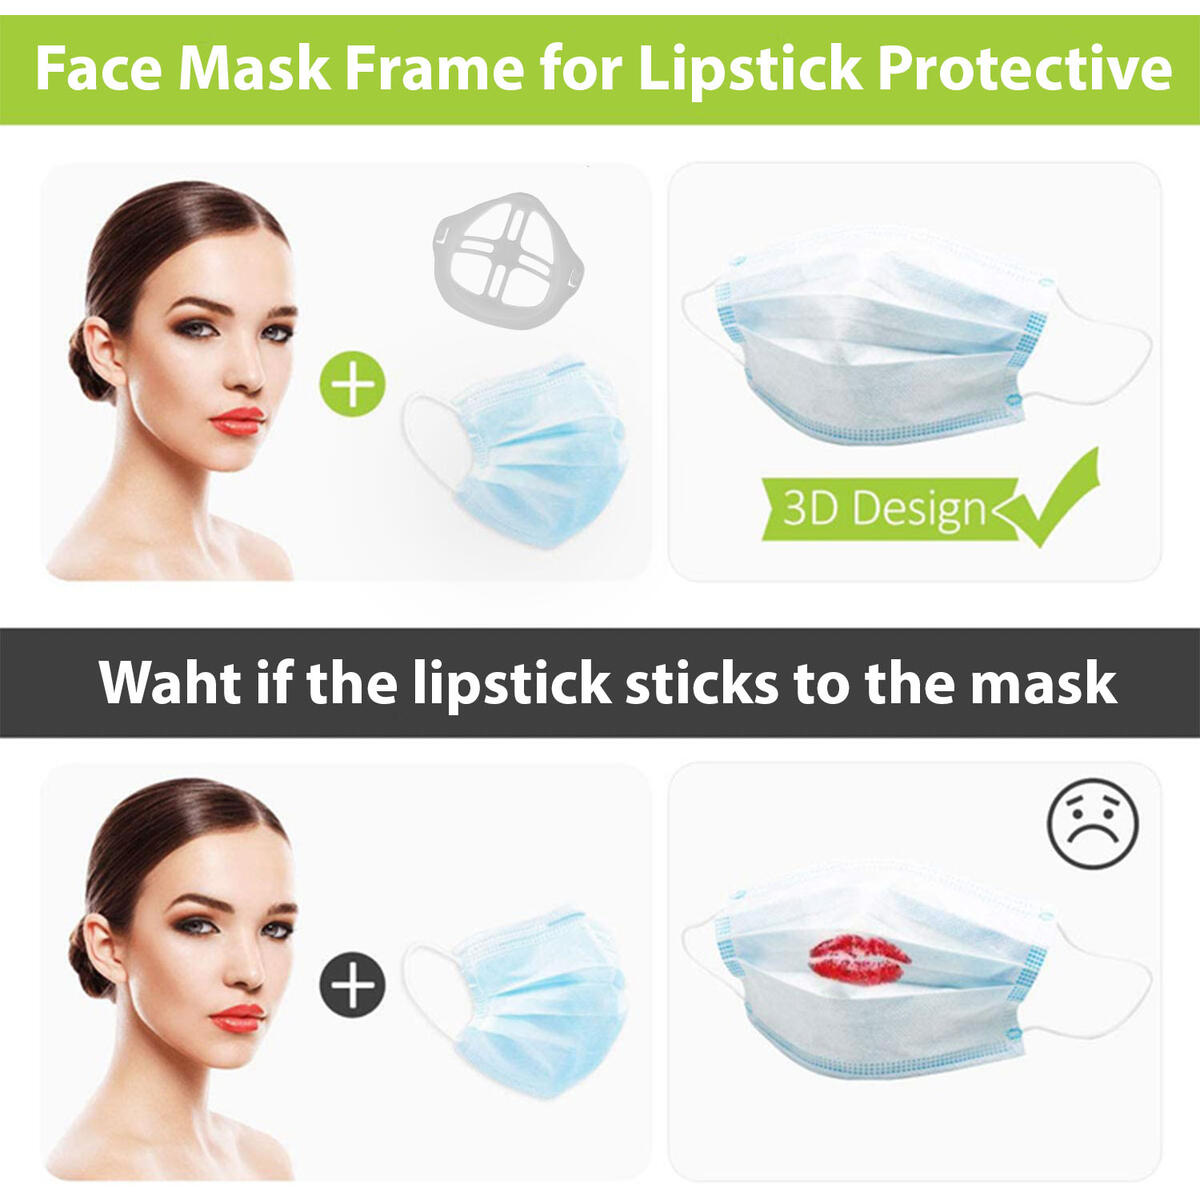 3D Face Mask Inner Support Frame (4pcs) - Cool Silicone Mask Bracket - Protects your Makeup - More Space for Comfortable Breathing - Reusable